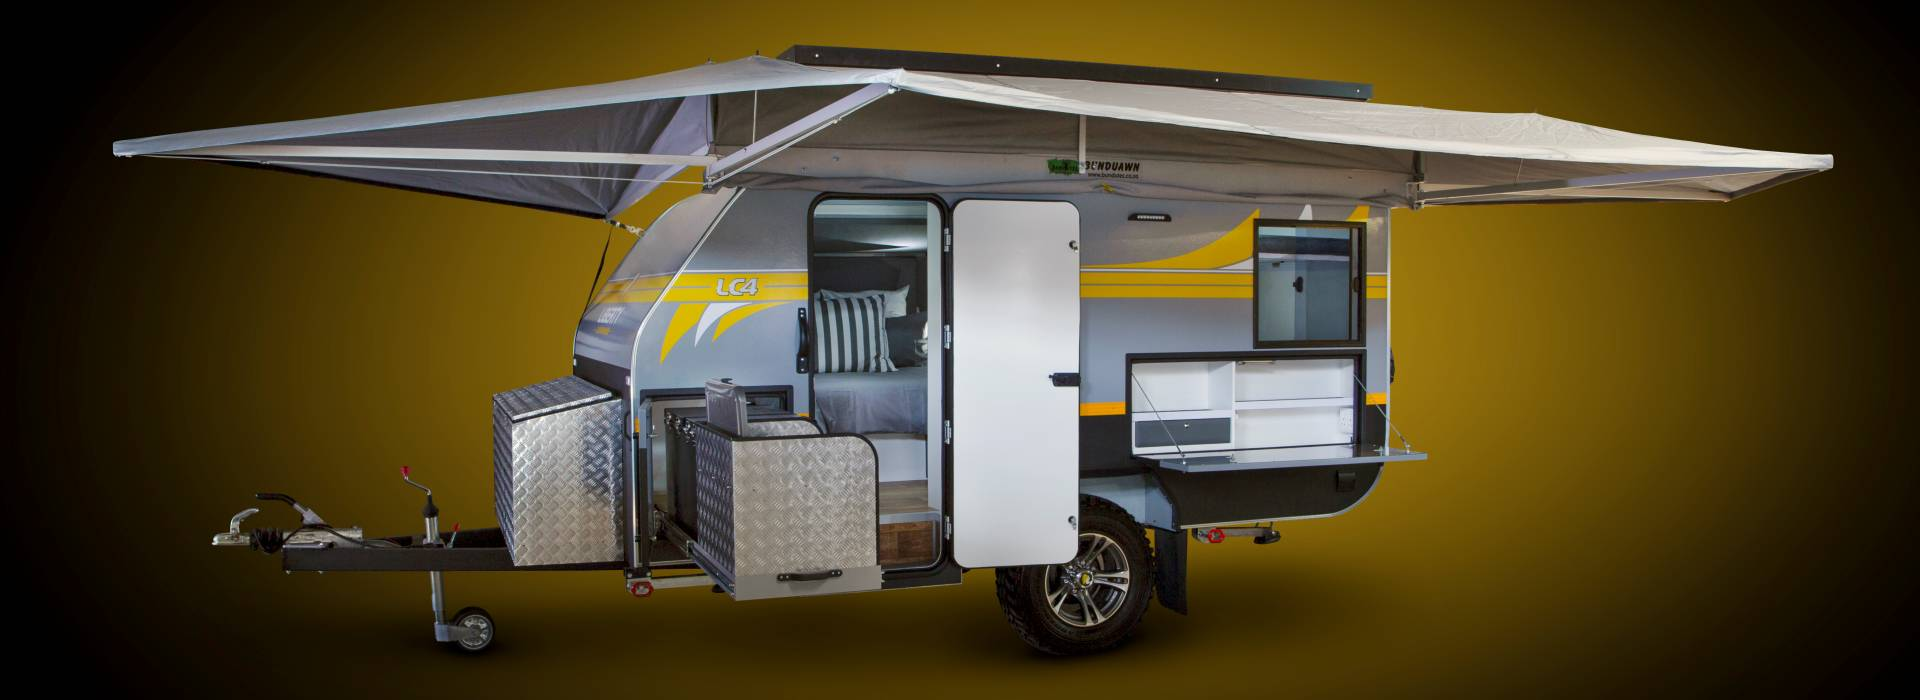 Liberty LC4 Off Road Caravan